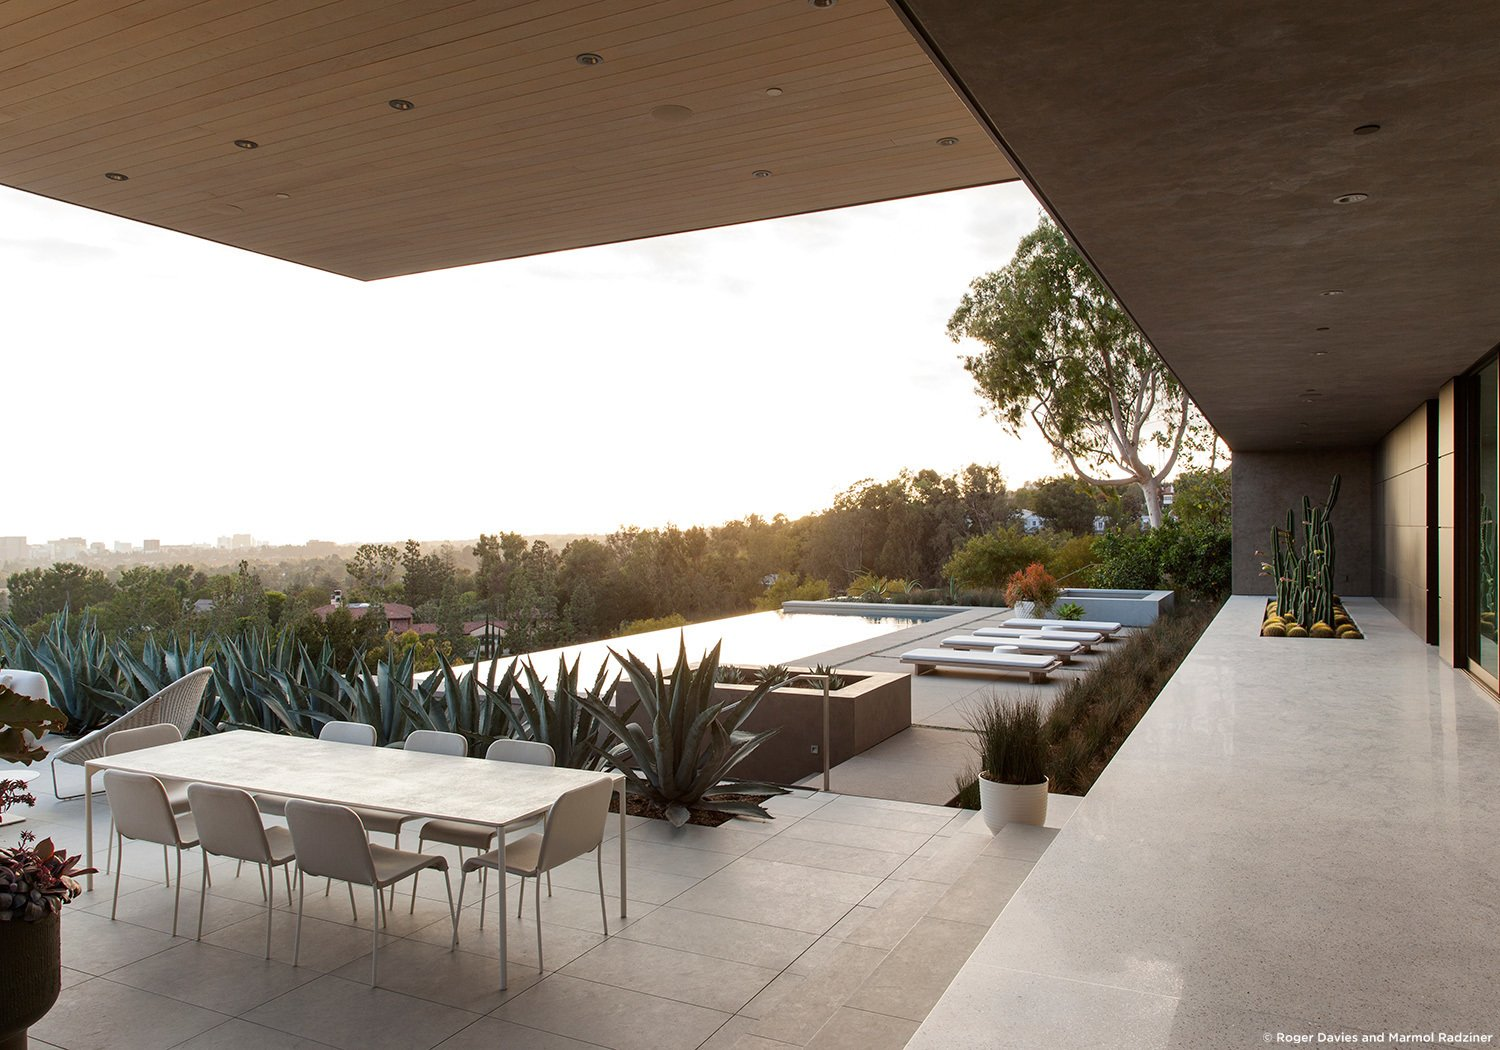 #SummitridgeResidence #modern #midcentury #levels #exterior #outside #outdoor #landscape #green #geometry #pool #view #seating #table #deck #structure #BeverlyHills #MarmolRadziner  Summitridge Residence